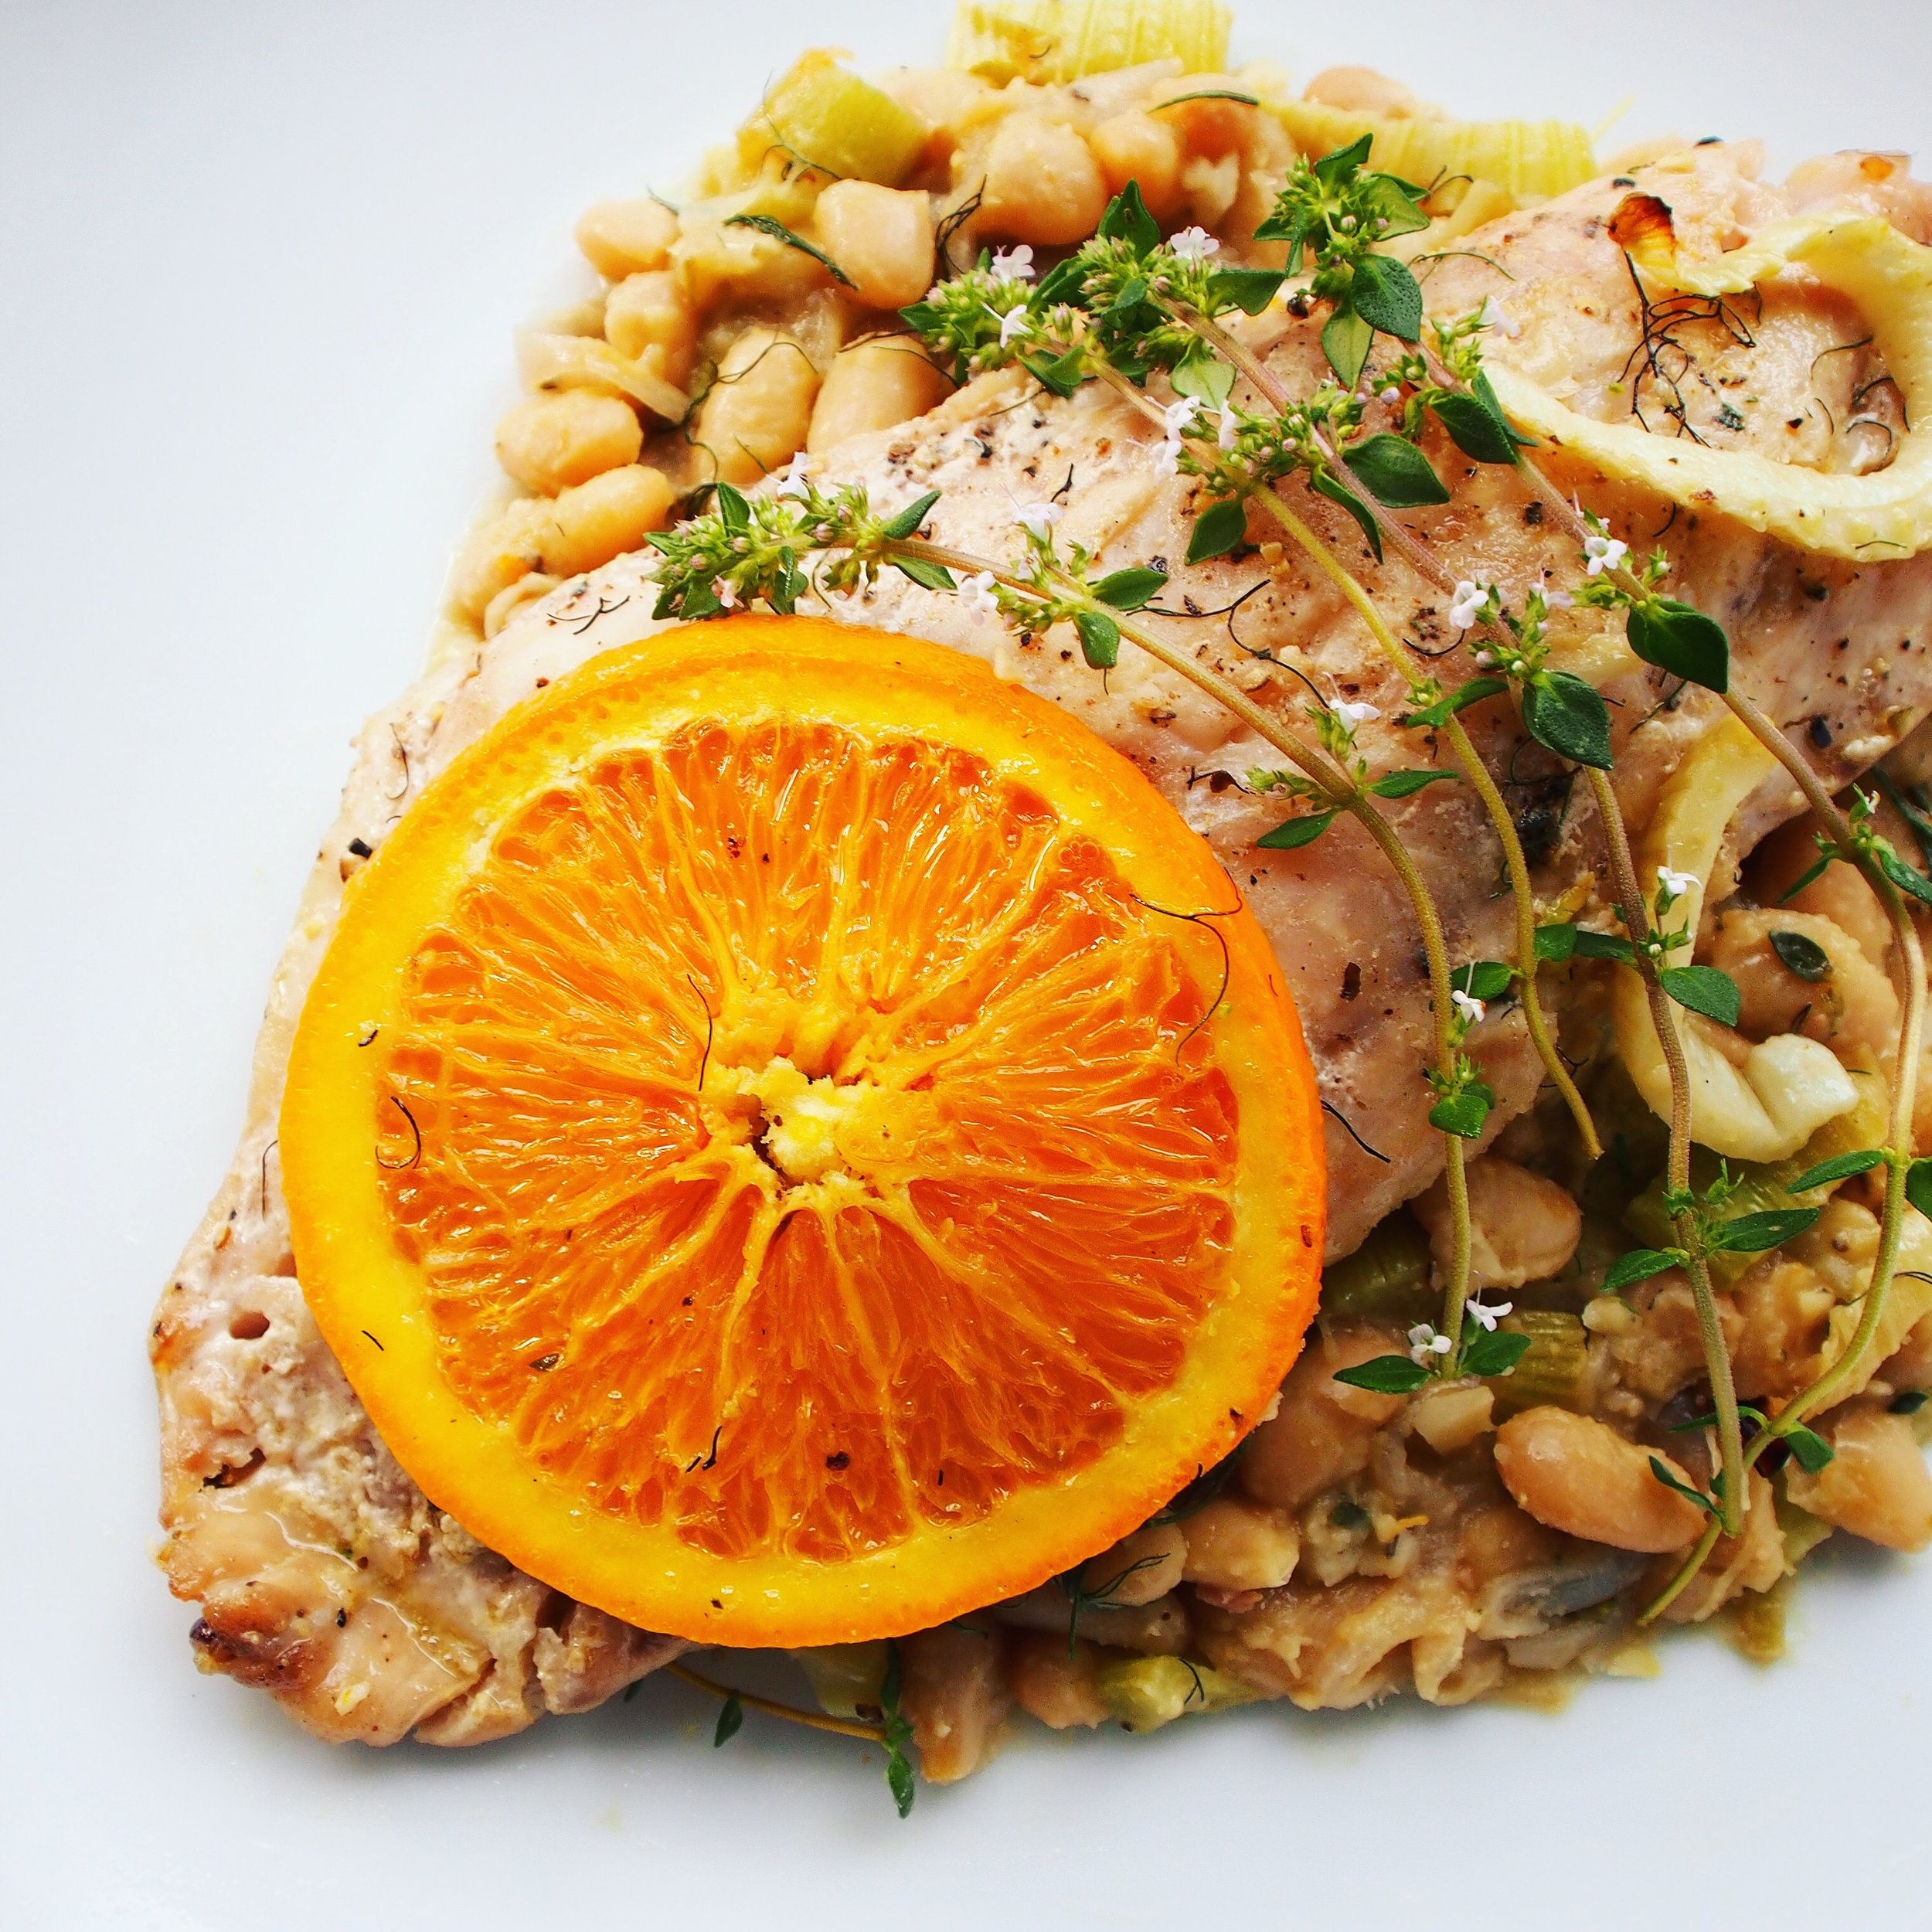 This rockfish recipe is a healthy and easy whitefish recipe. This quick fish recipe is paired with beans and oranges to make it extra nutritious!